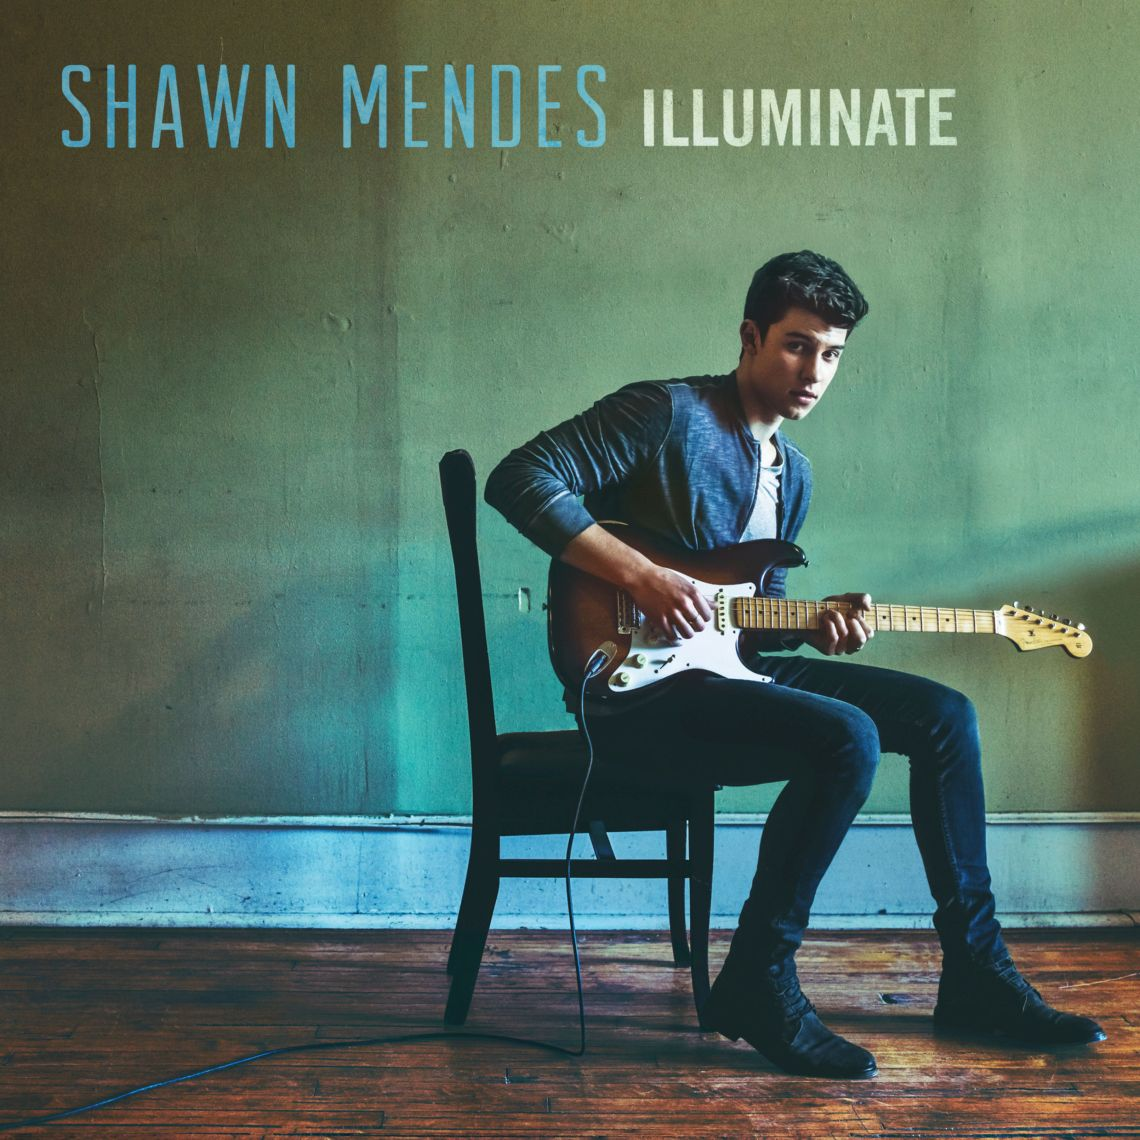 shawn-mendes-illuminate-2016-2480x2480